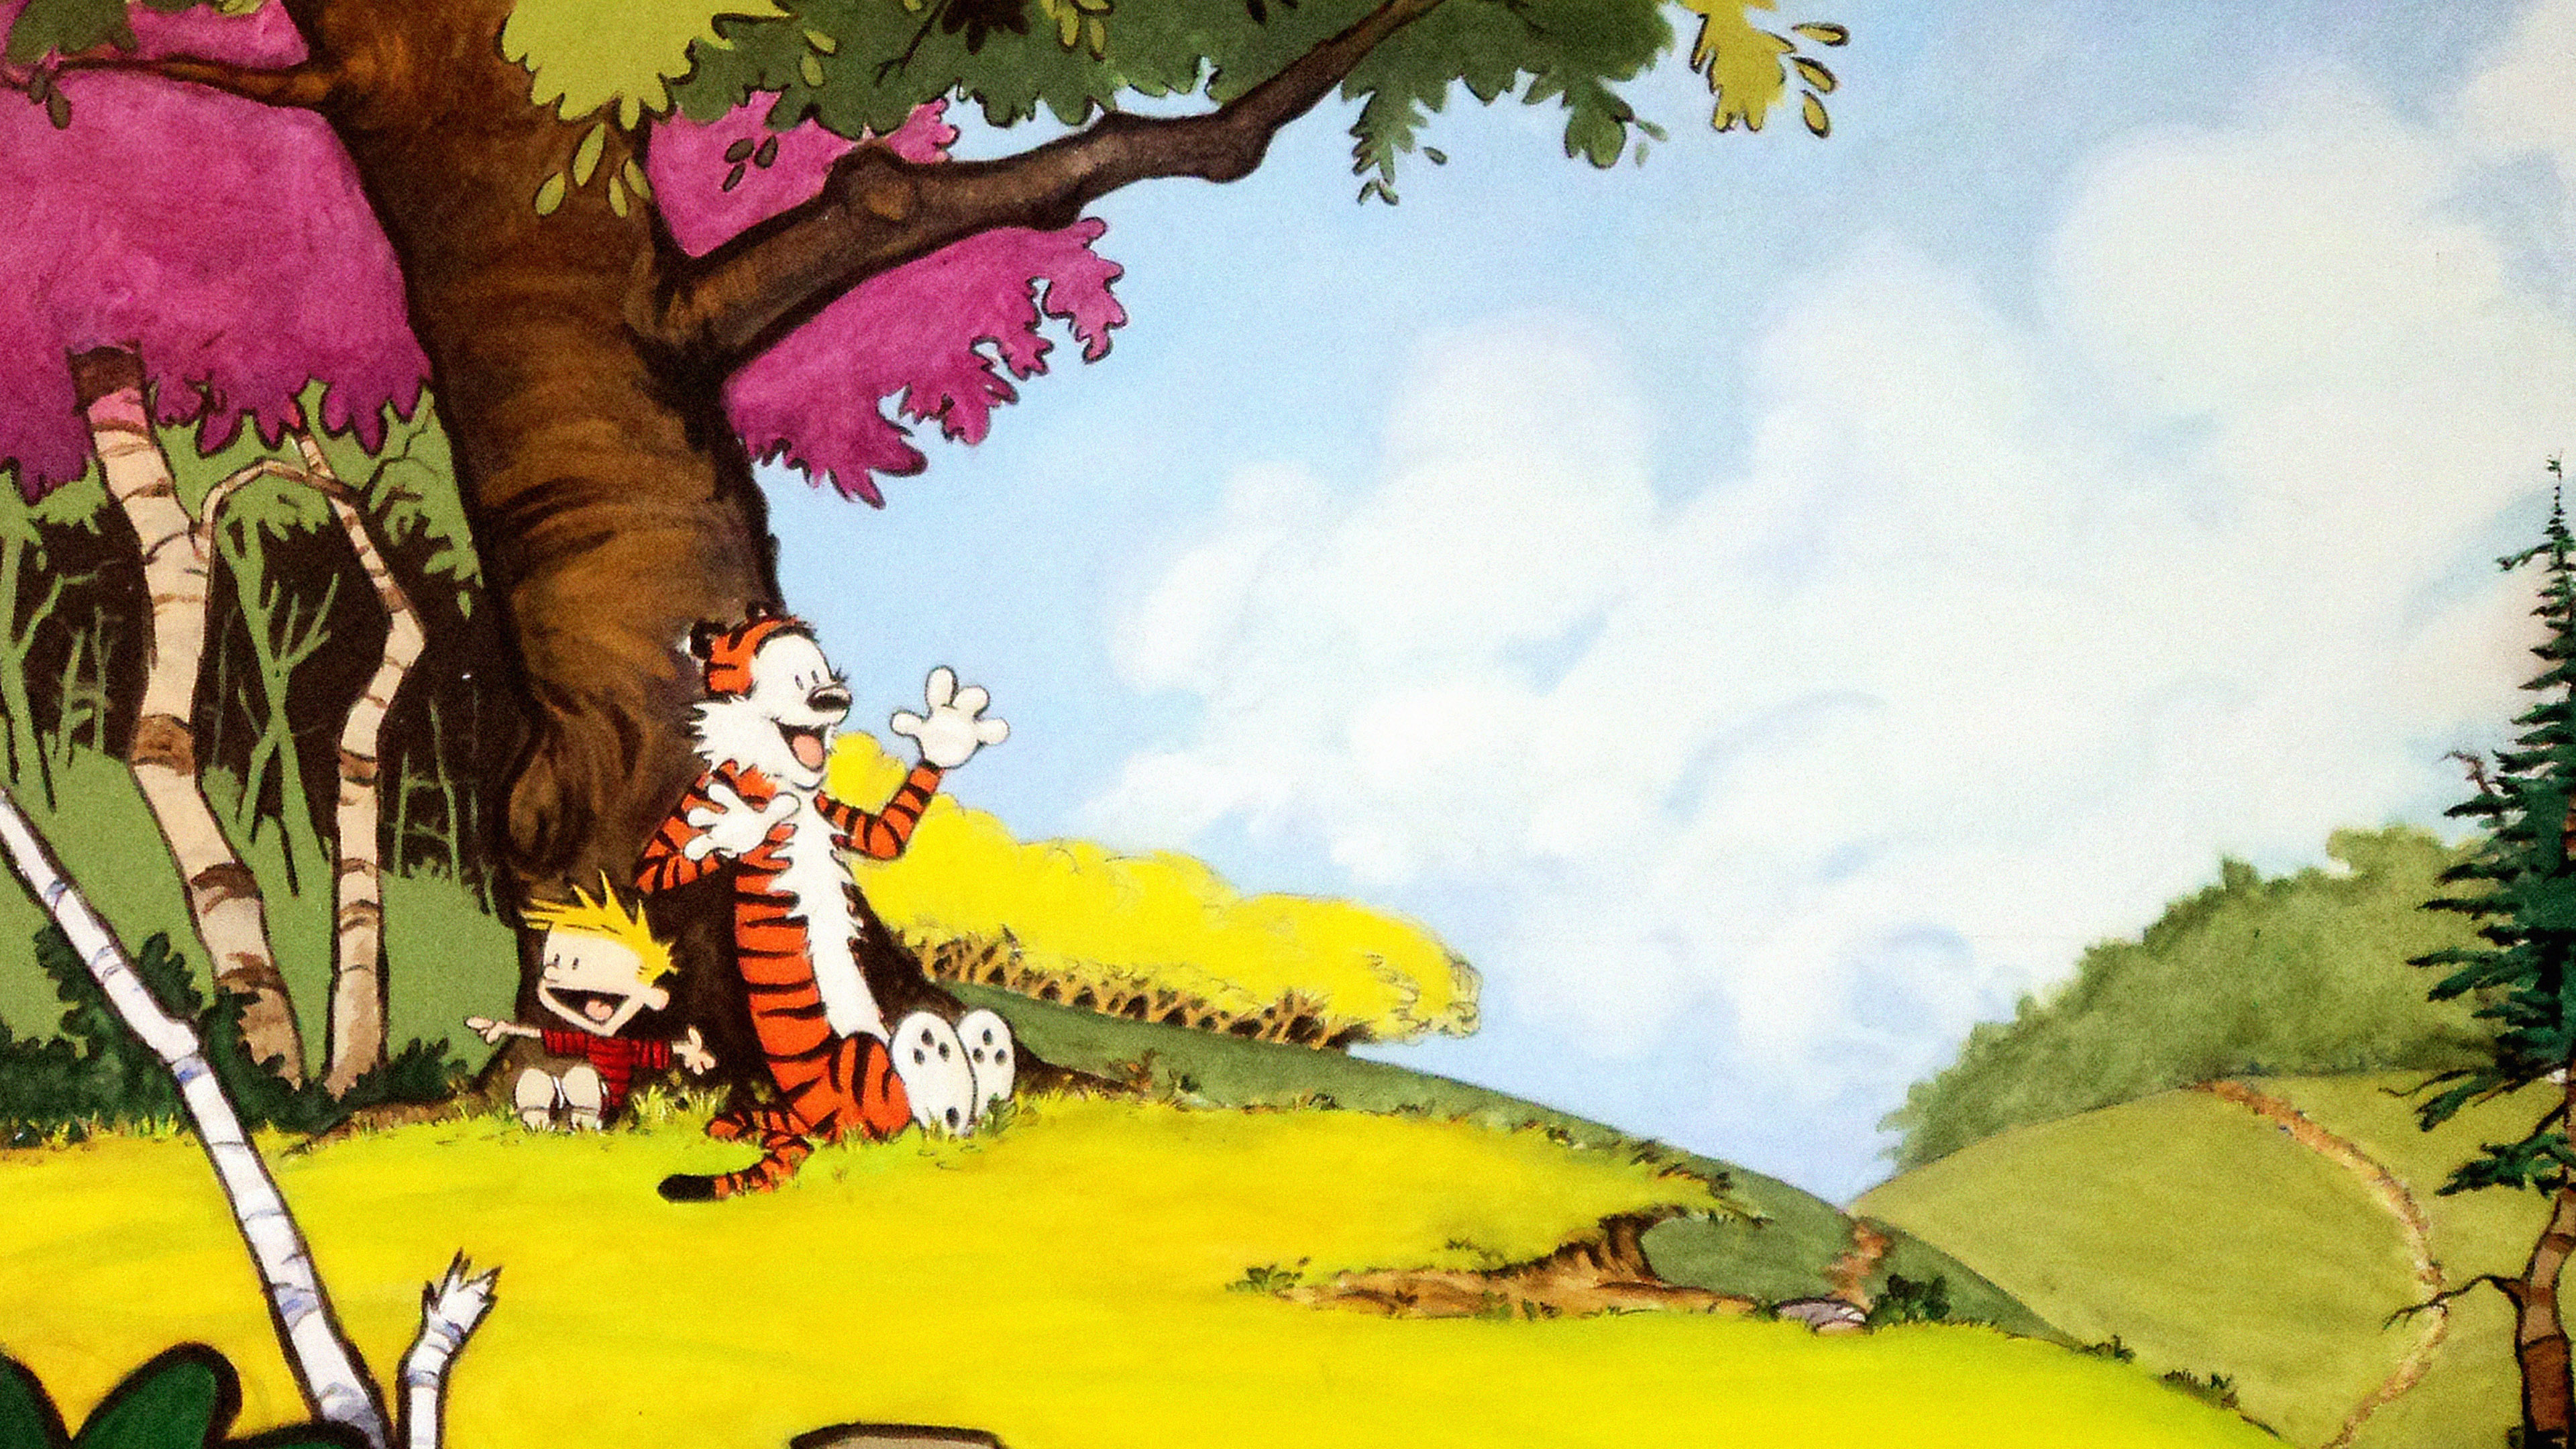 ac48-wallpaper-calvin-and-hobbes-after-nap - Papers.co